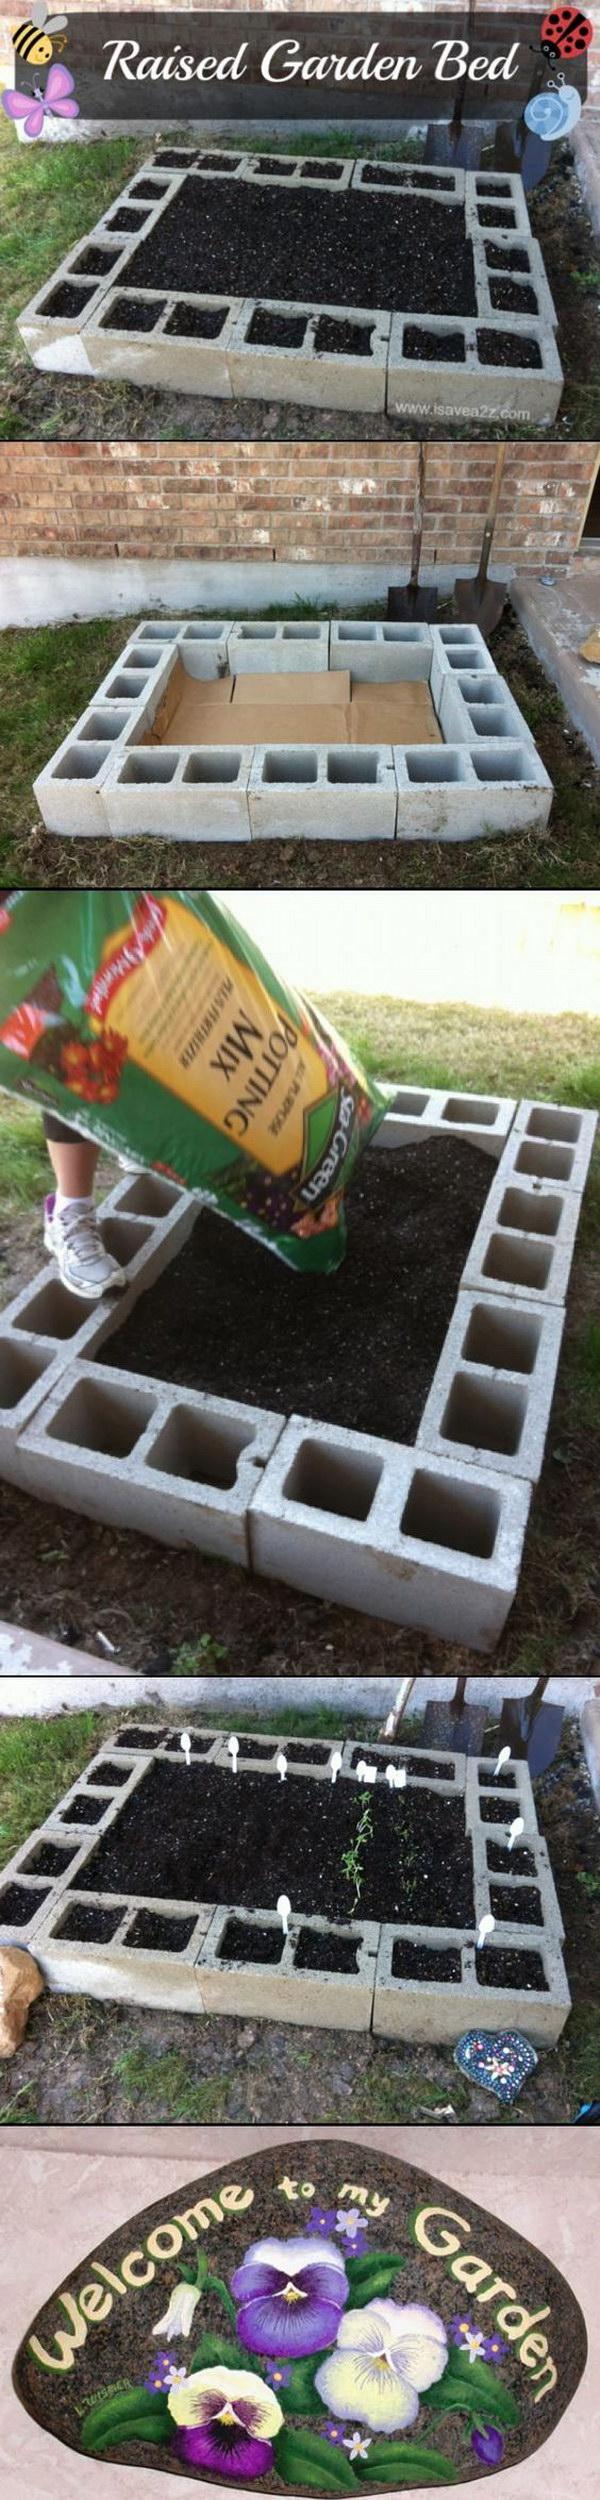 Raised Bed Garden Made Out Of Cinder Blocks.